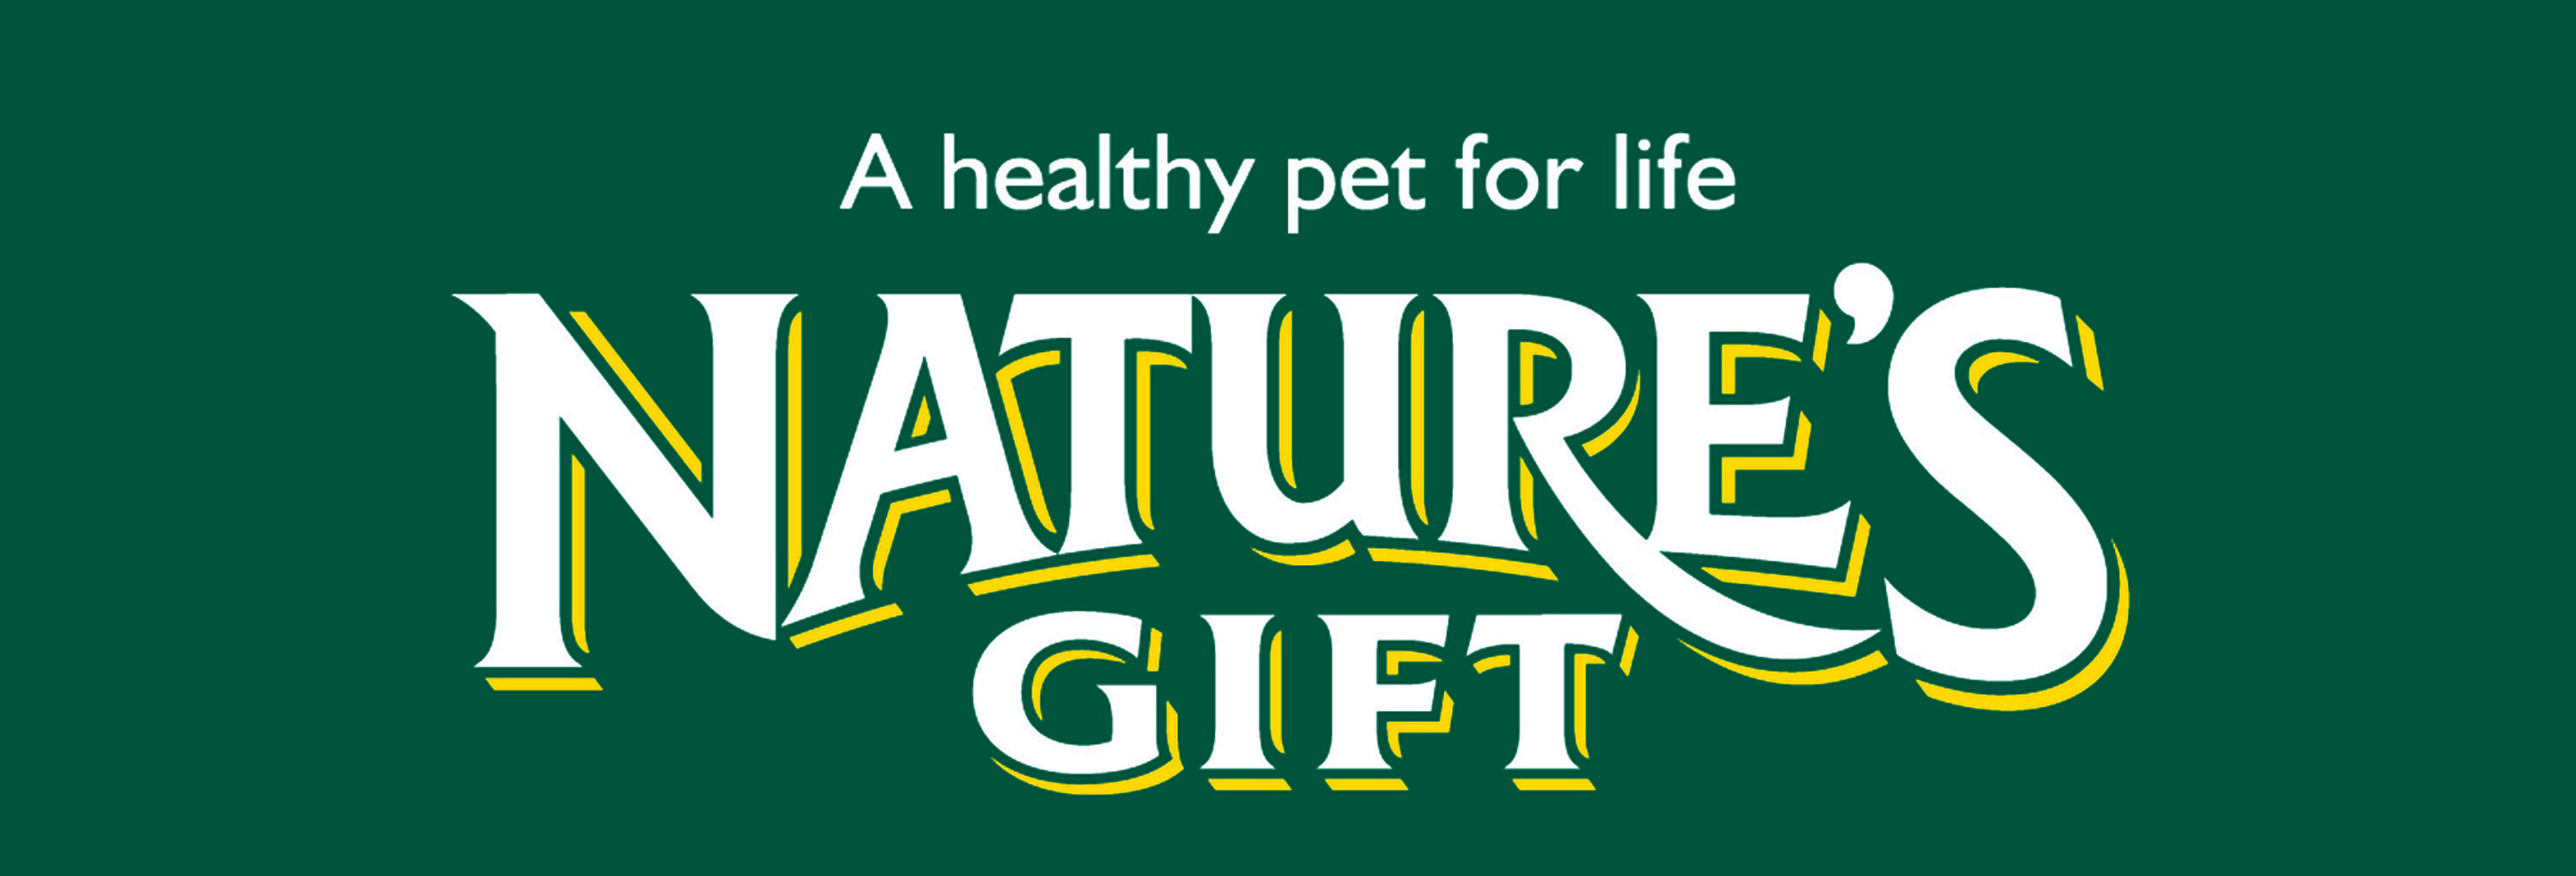 naturesgift logo.jpg